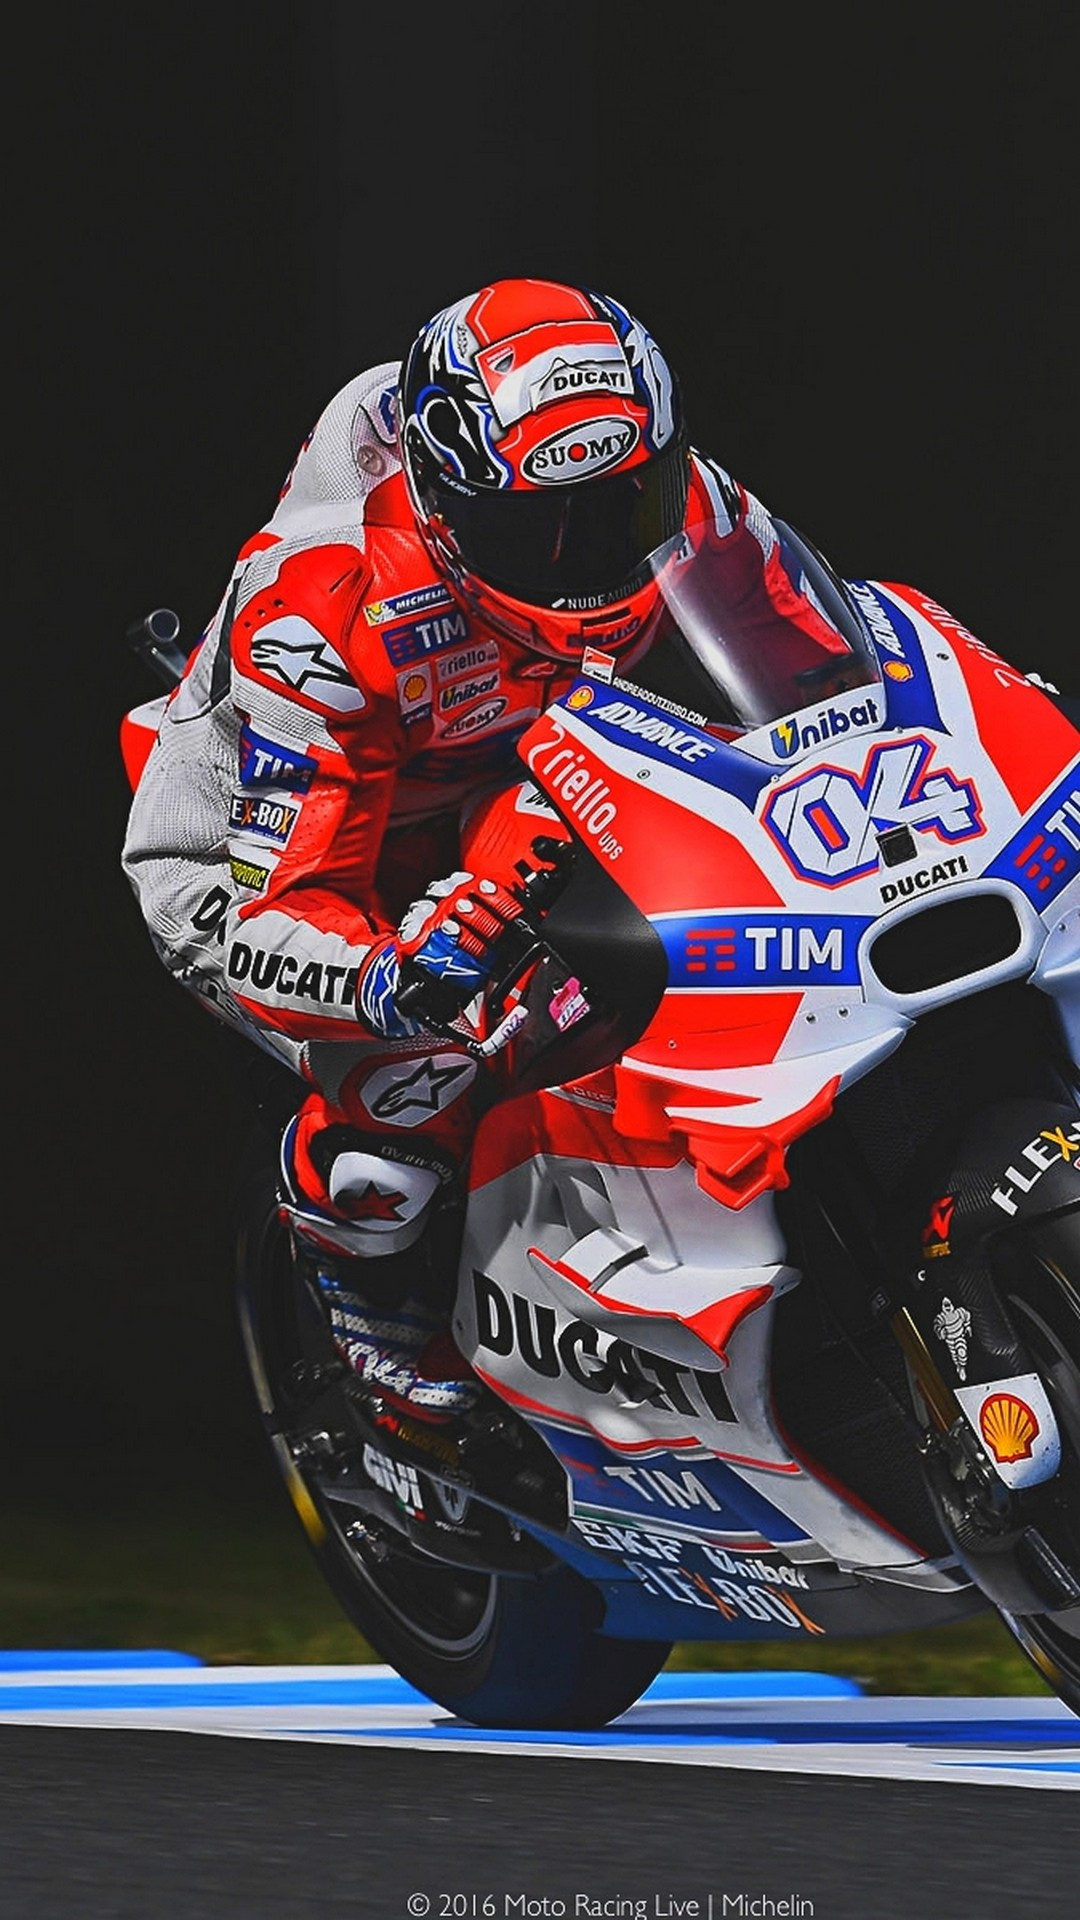 Motogp Andrea Dovizioso Wallpaper For iPhone 2019 3D iPhone 1080x1920